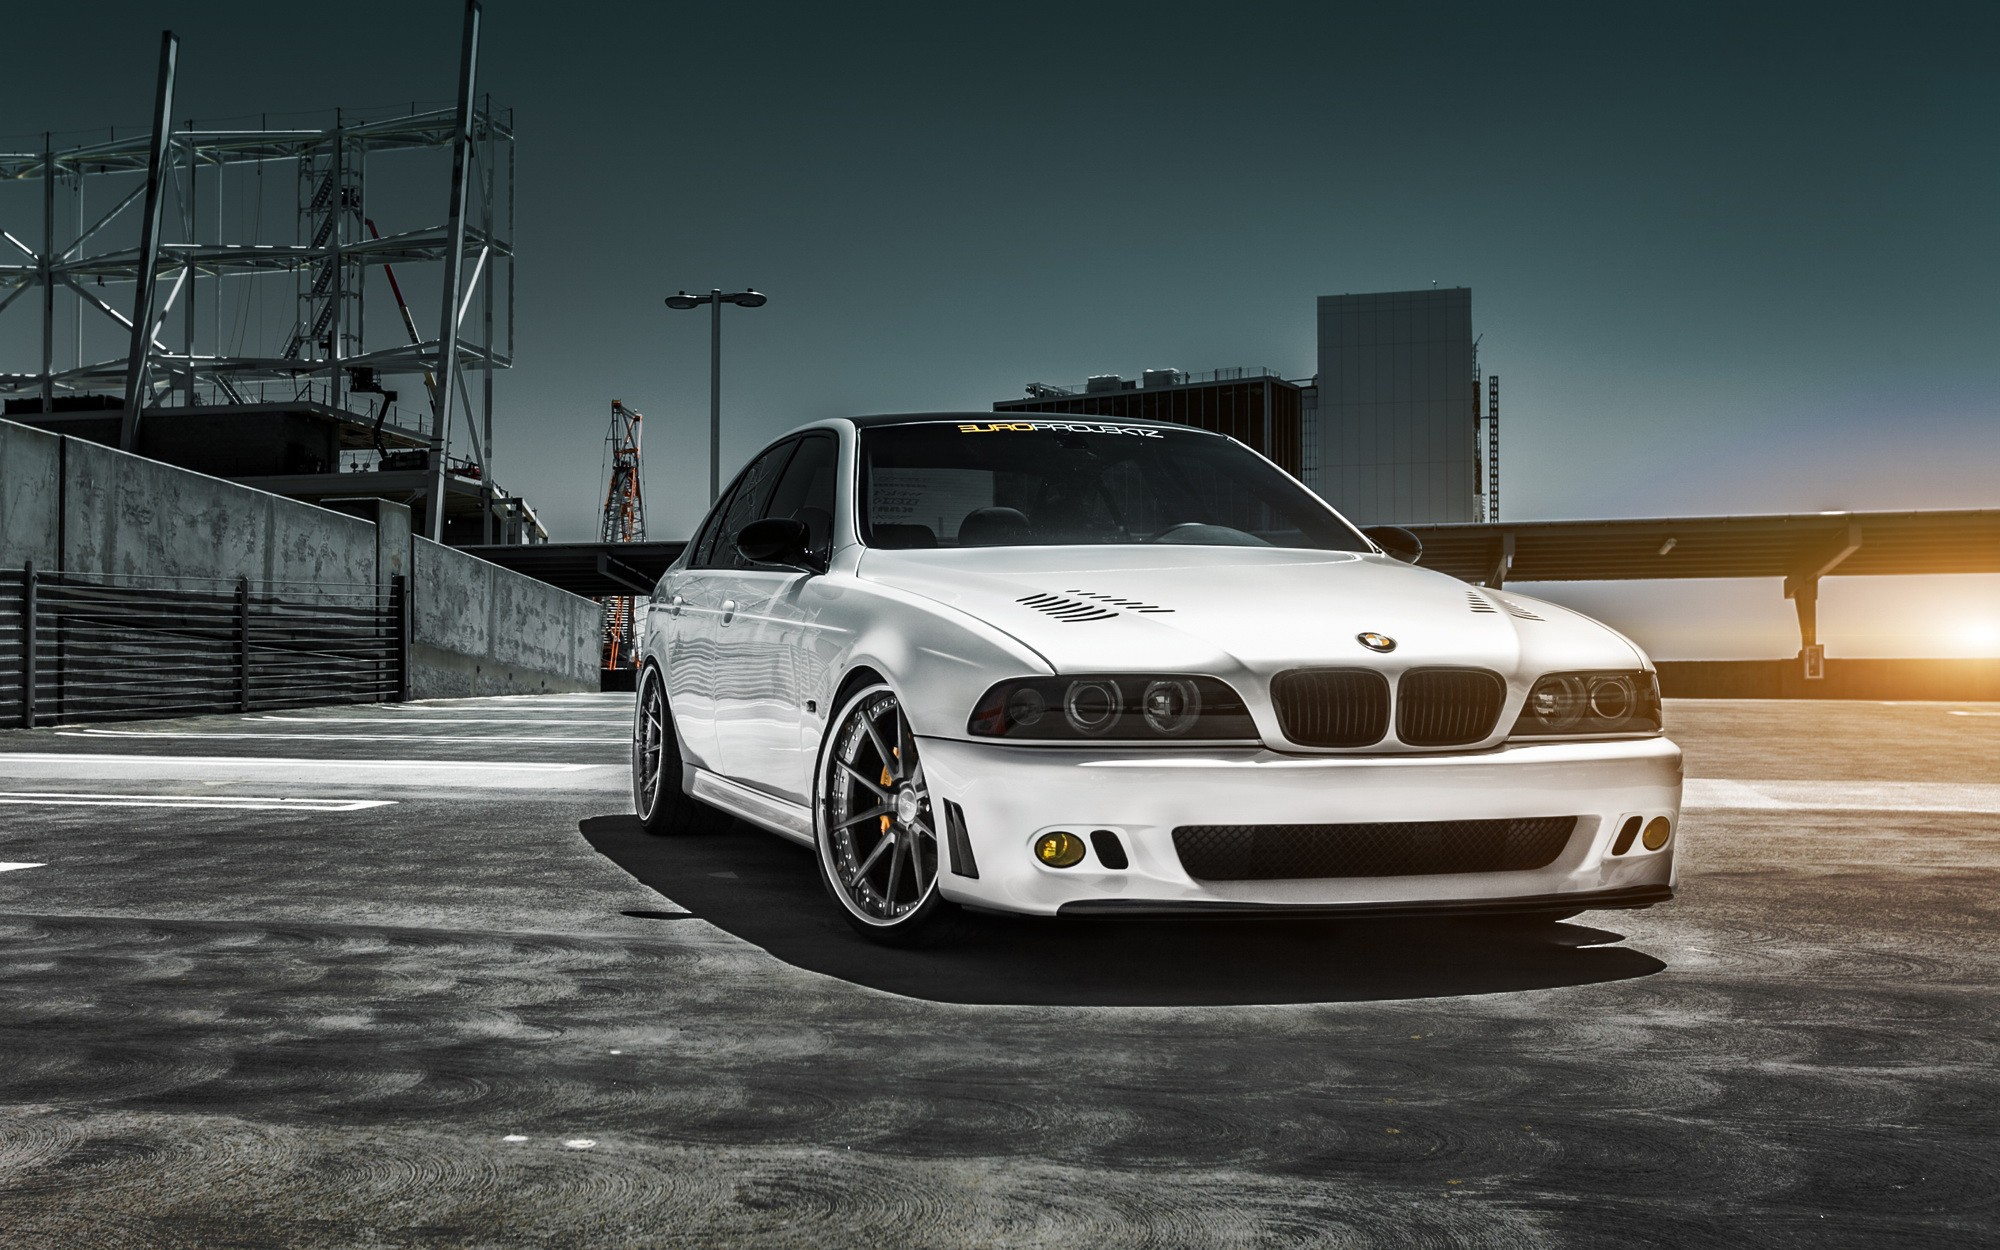 BMW e39 Wallpapers Images Photos Pictures Backgrounds